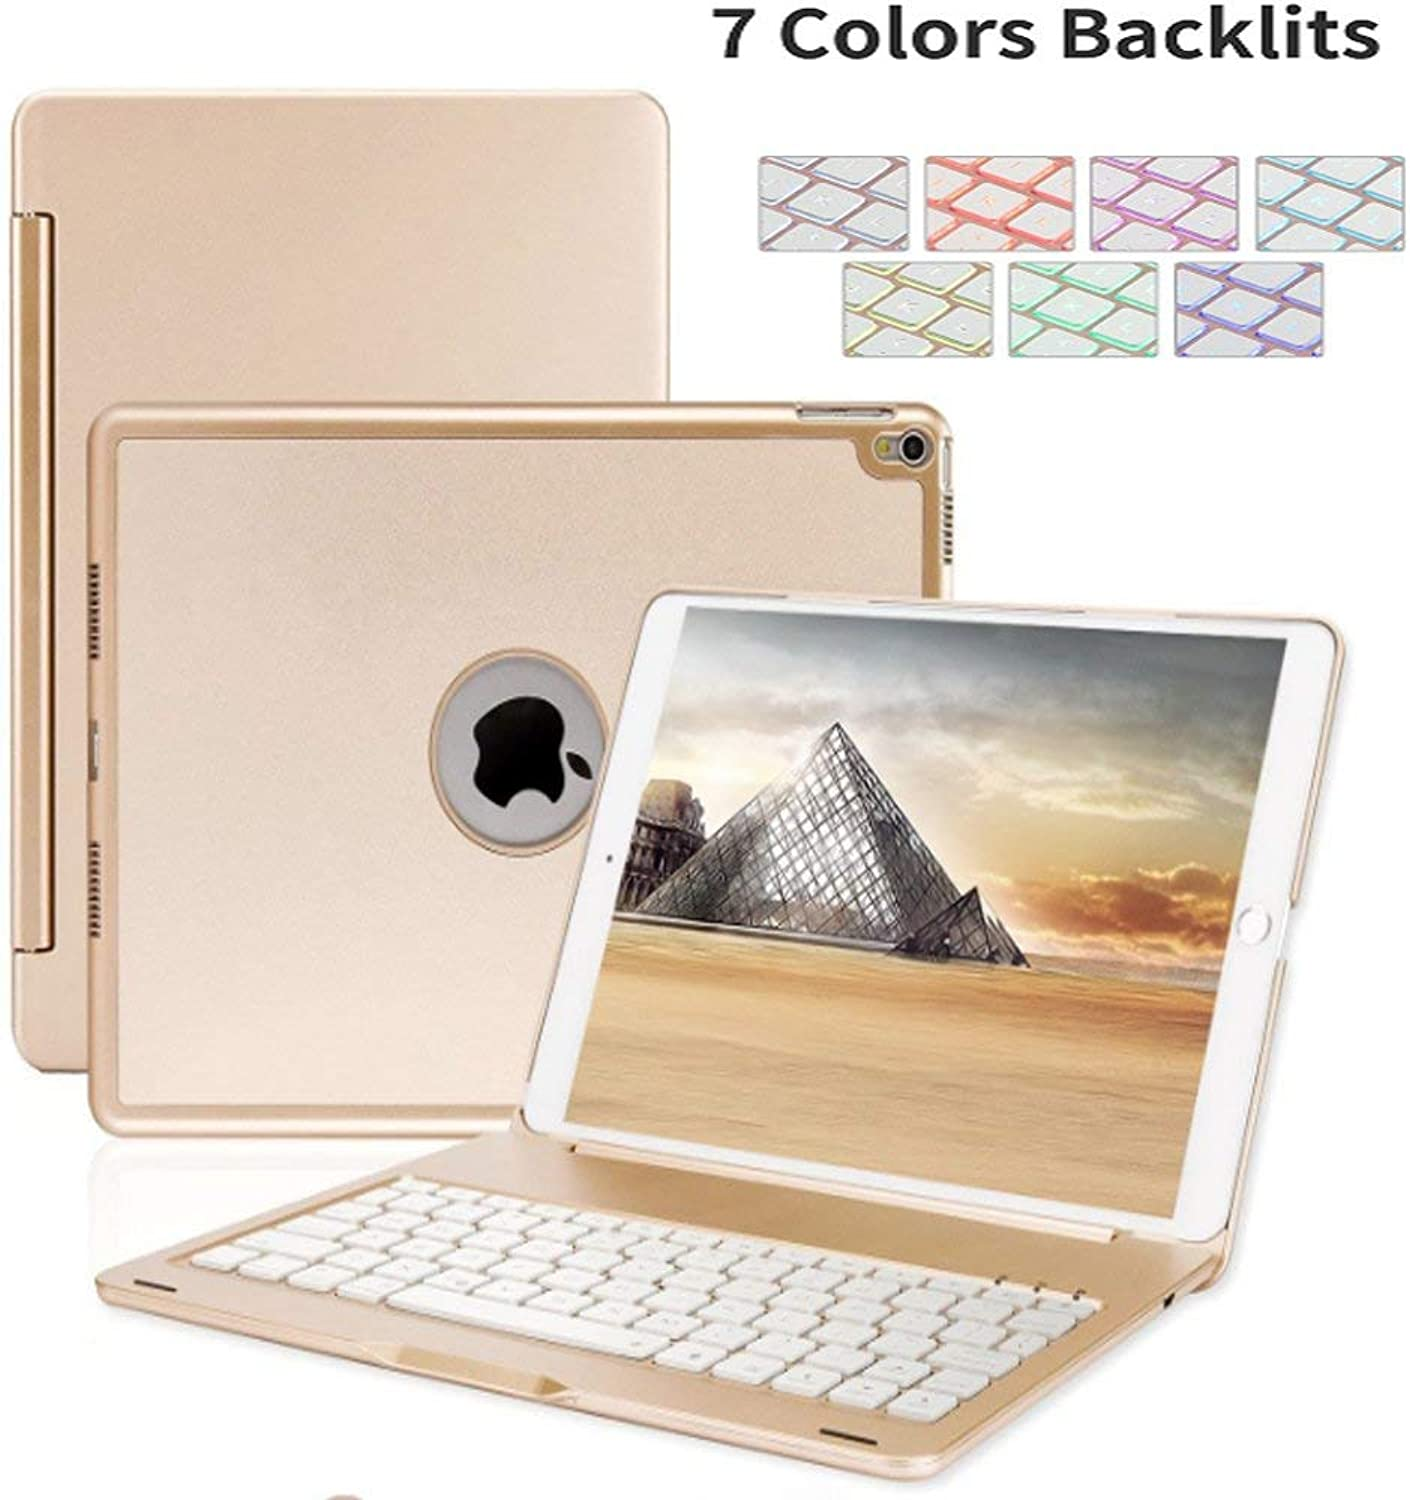 IPad 10.5 inch 2019 Keyboard Case(3rd Gen),Sammid Wireless 7 color Backlit Silent Typing Keyboard Case with Hard Shell Multi-Angle Stand Predection Cover Smart Keyboard for 10.5 inch iPad Air 3rd Generation-gold